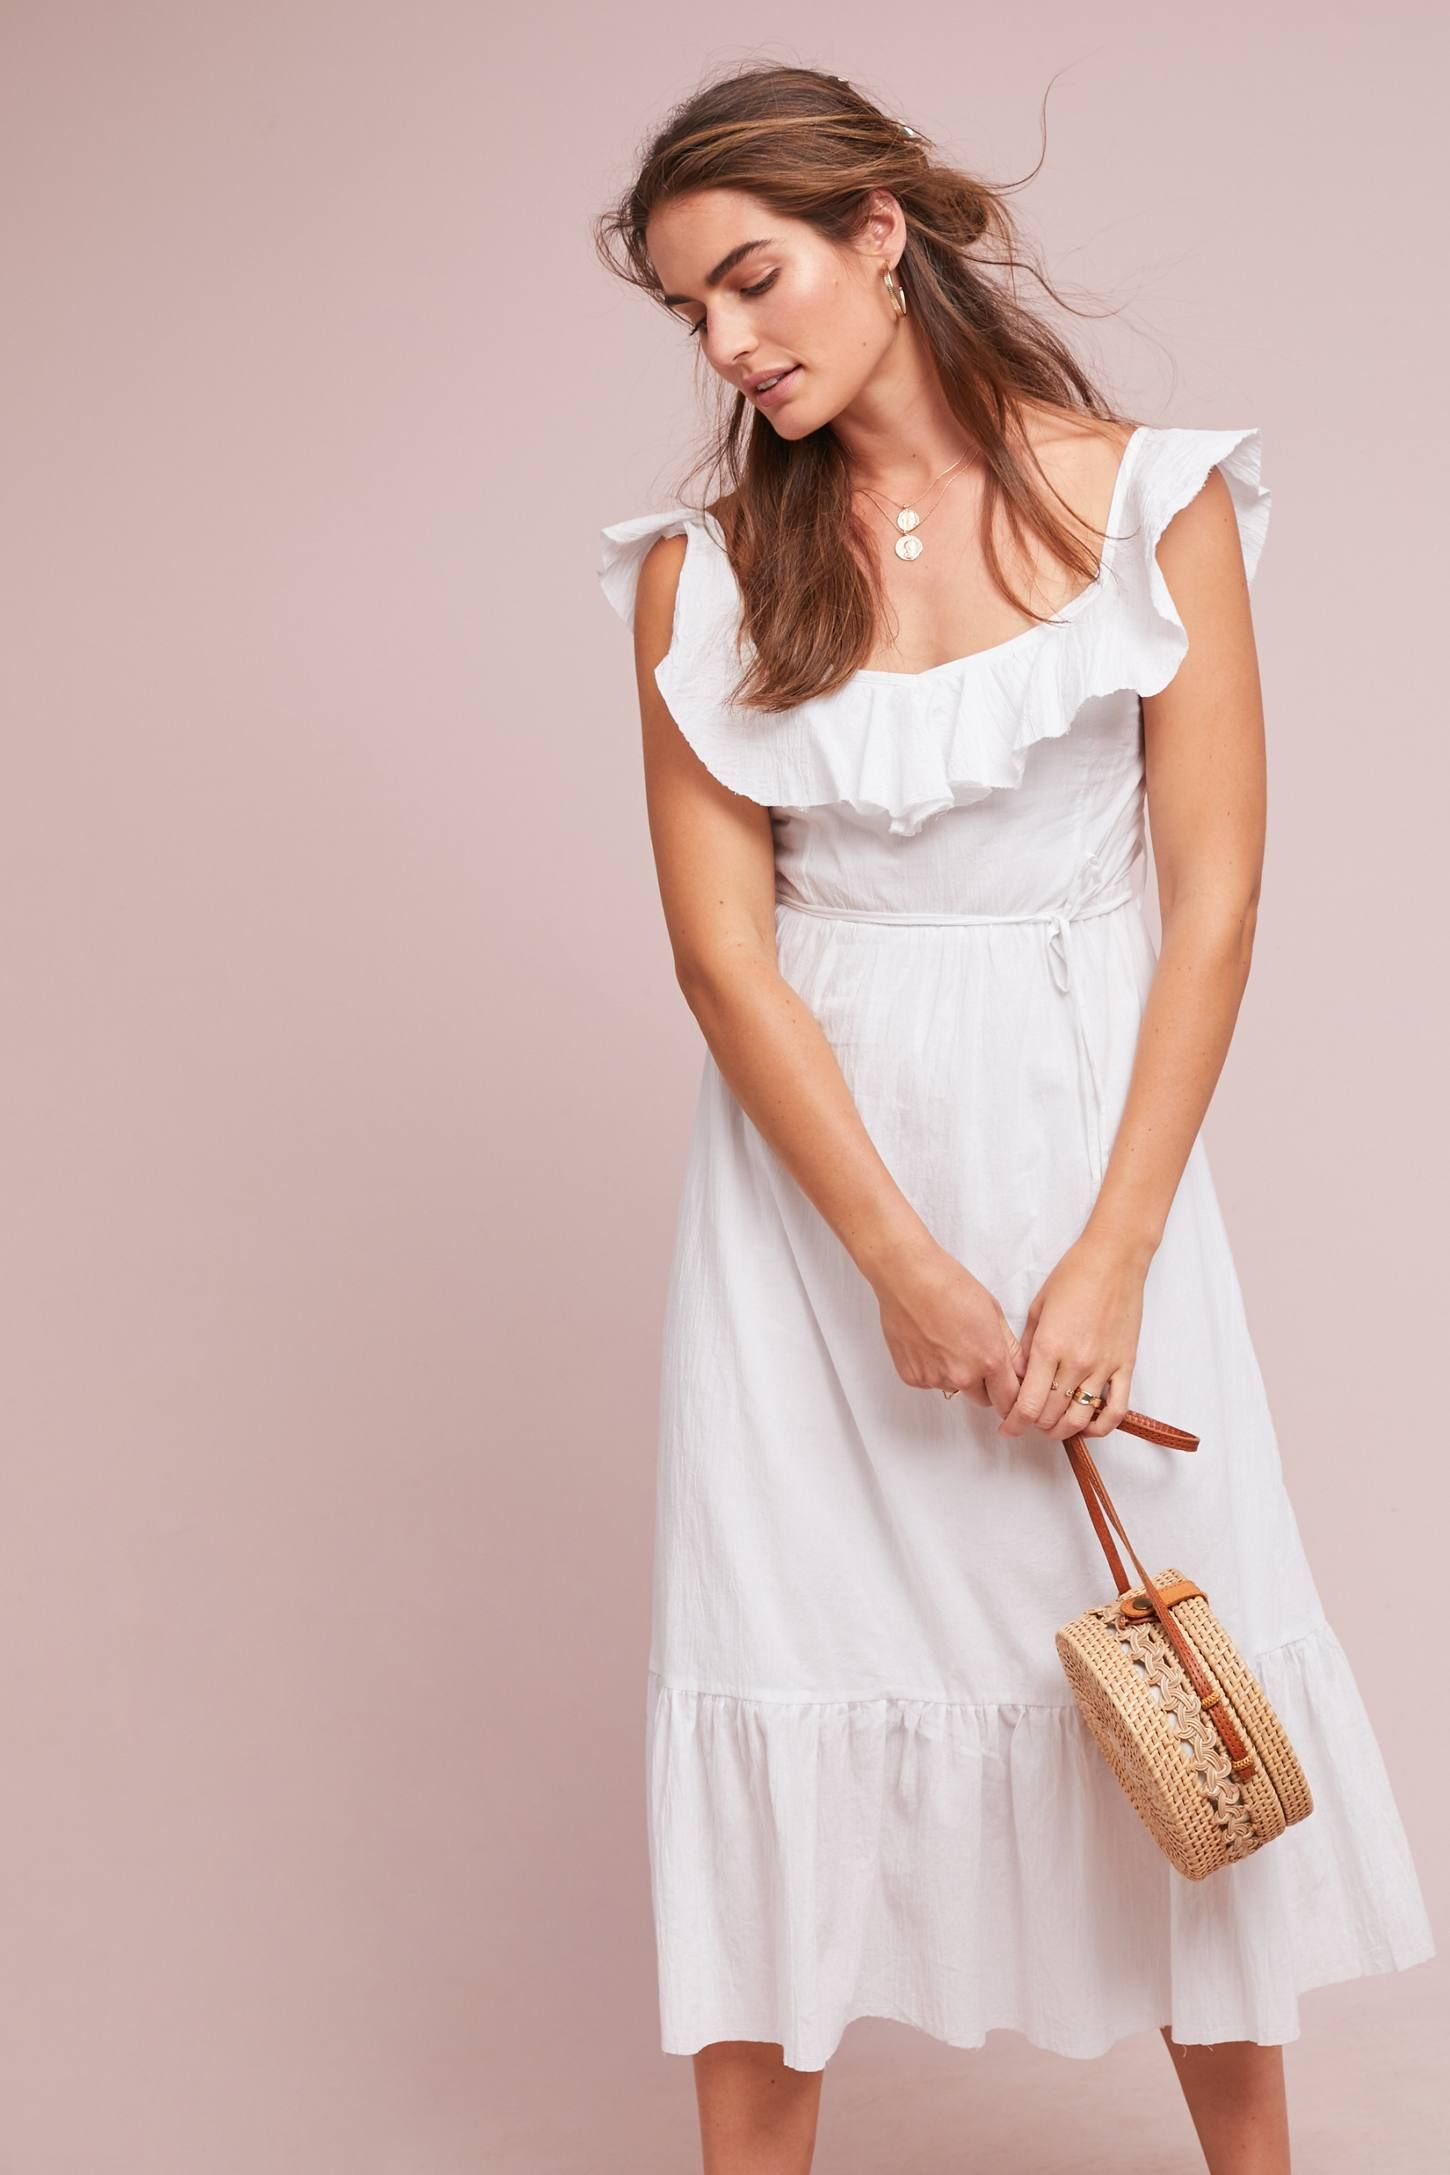 The Daily Hunt A Playful Faux Fur Bag And More Katie Considers Flutter Sleeve Dress Midi Dress With Sleeves Plus Size Wedding Guest Dresses [ 2175 x 1450 Pixel ]